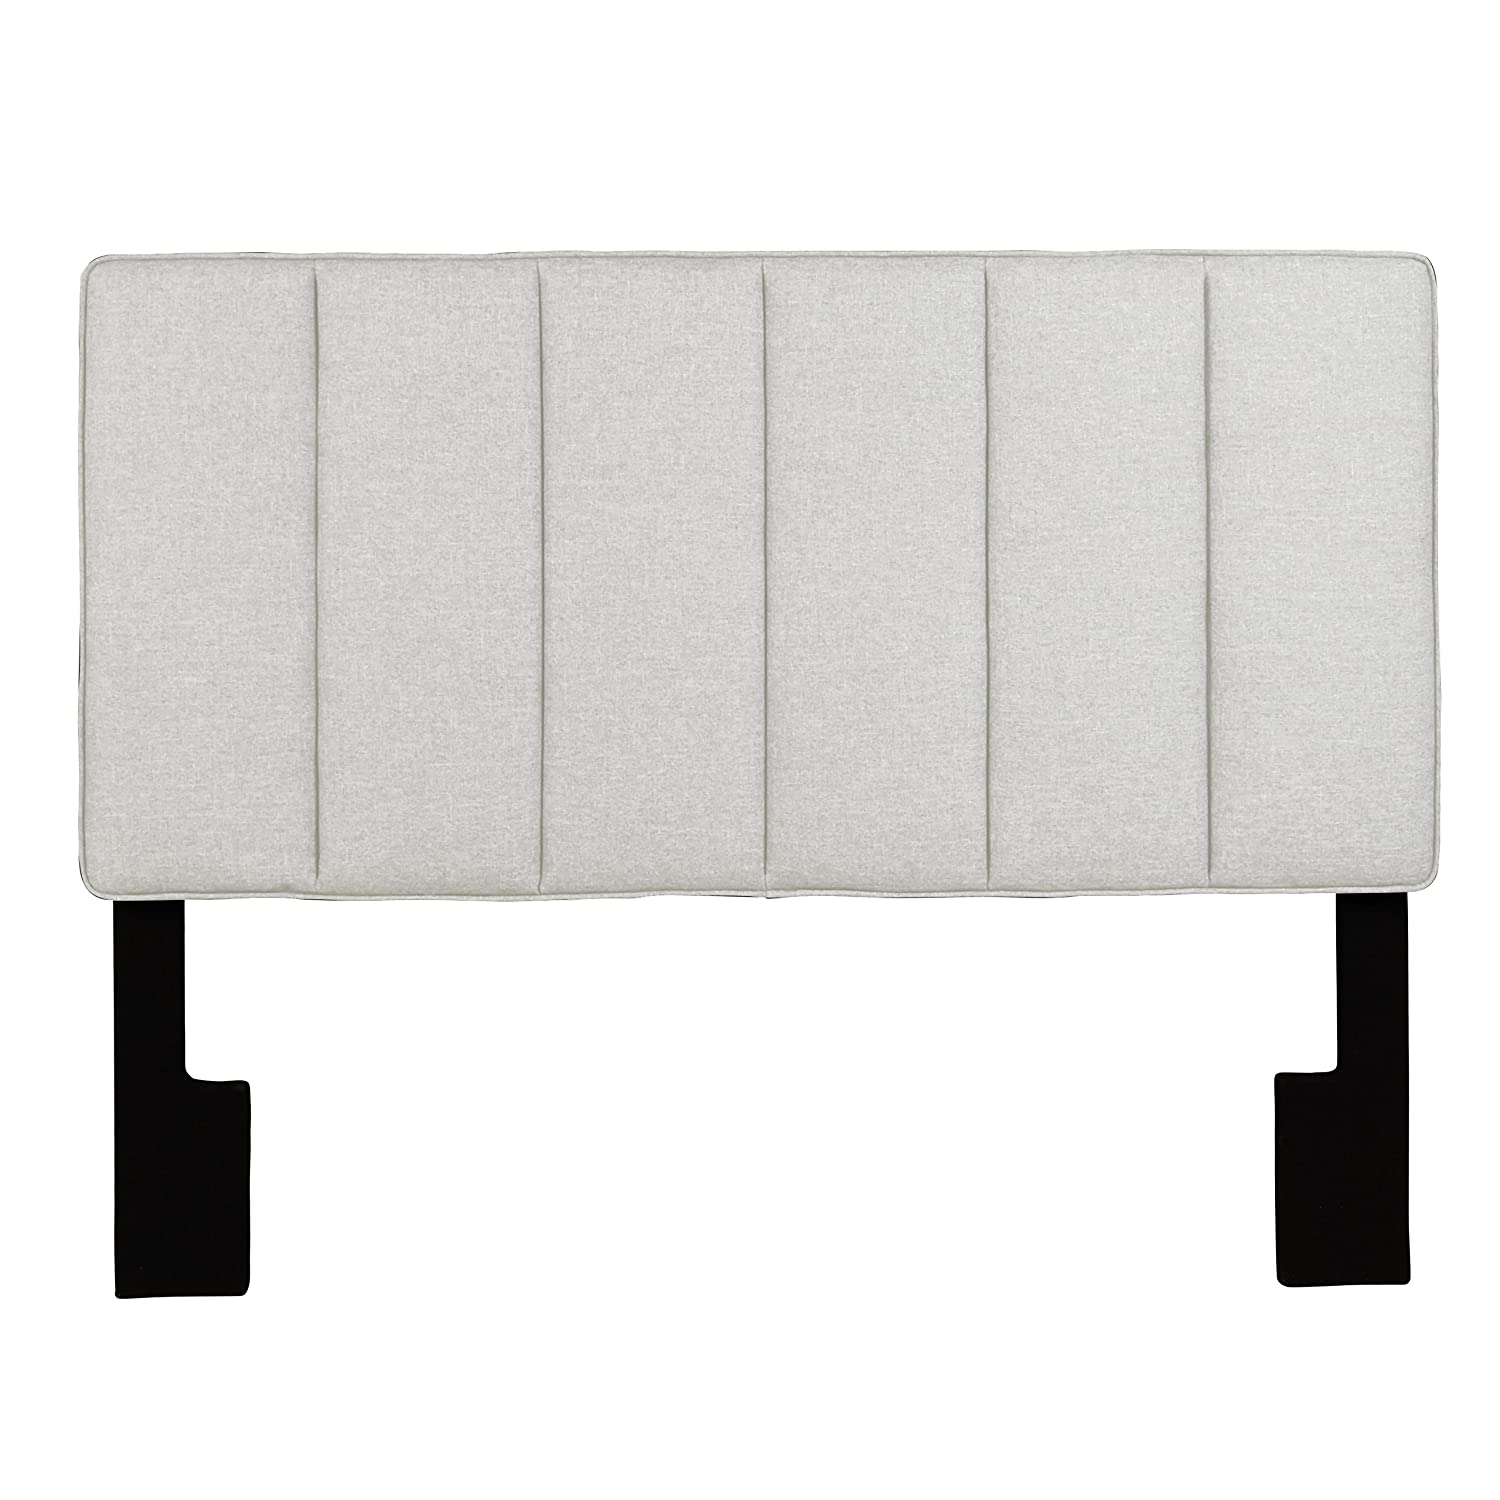 cream for size upholstered headboards clearance attractive headboard only white low large of queen bed shelves frame head with and king bookcase beds measurements